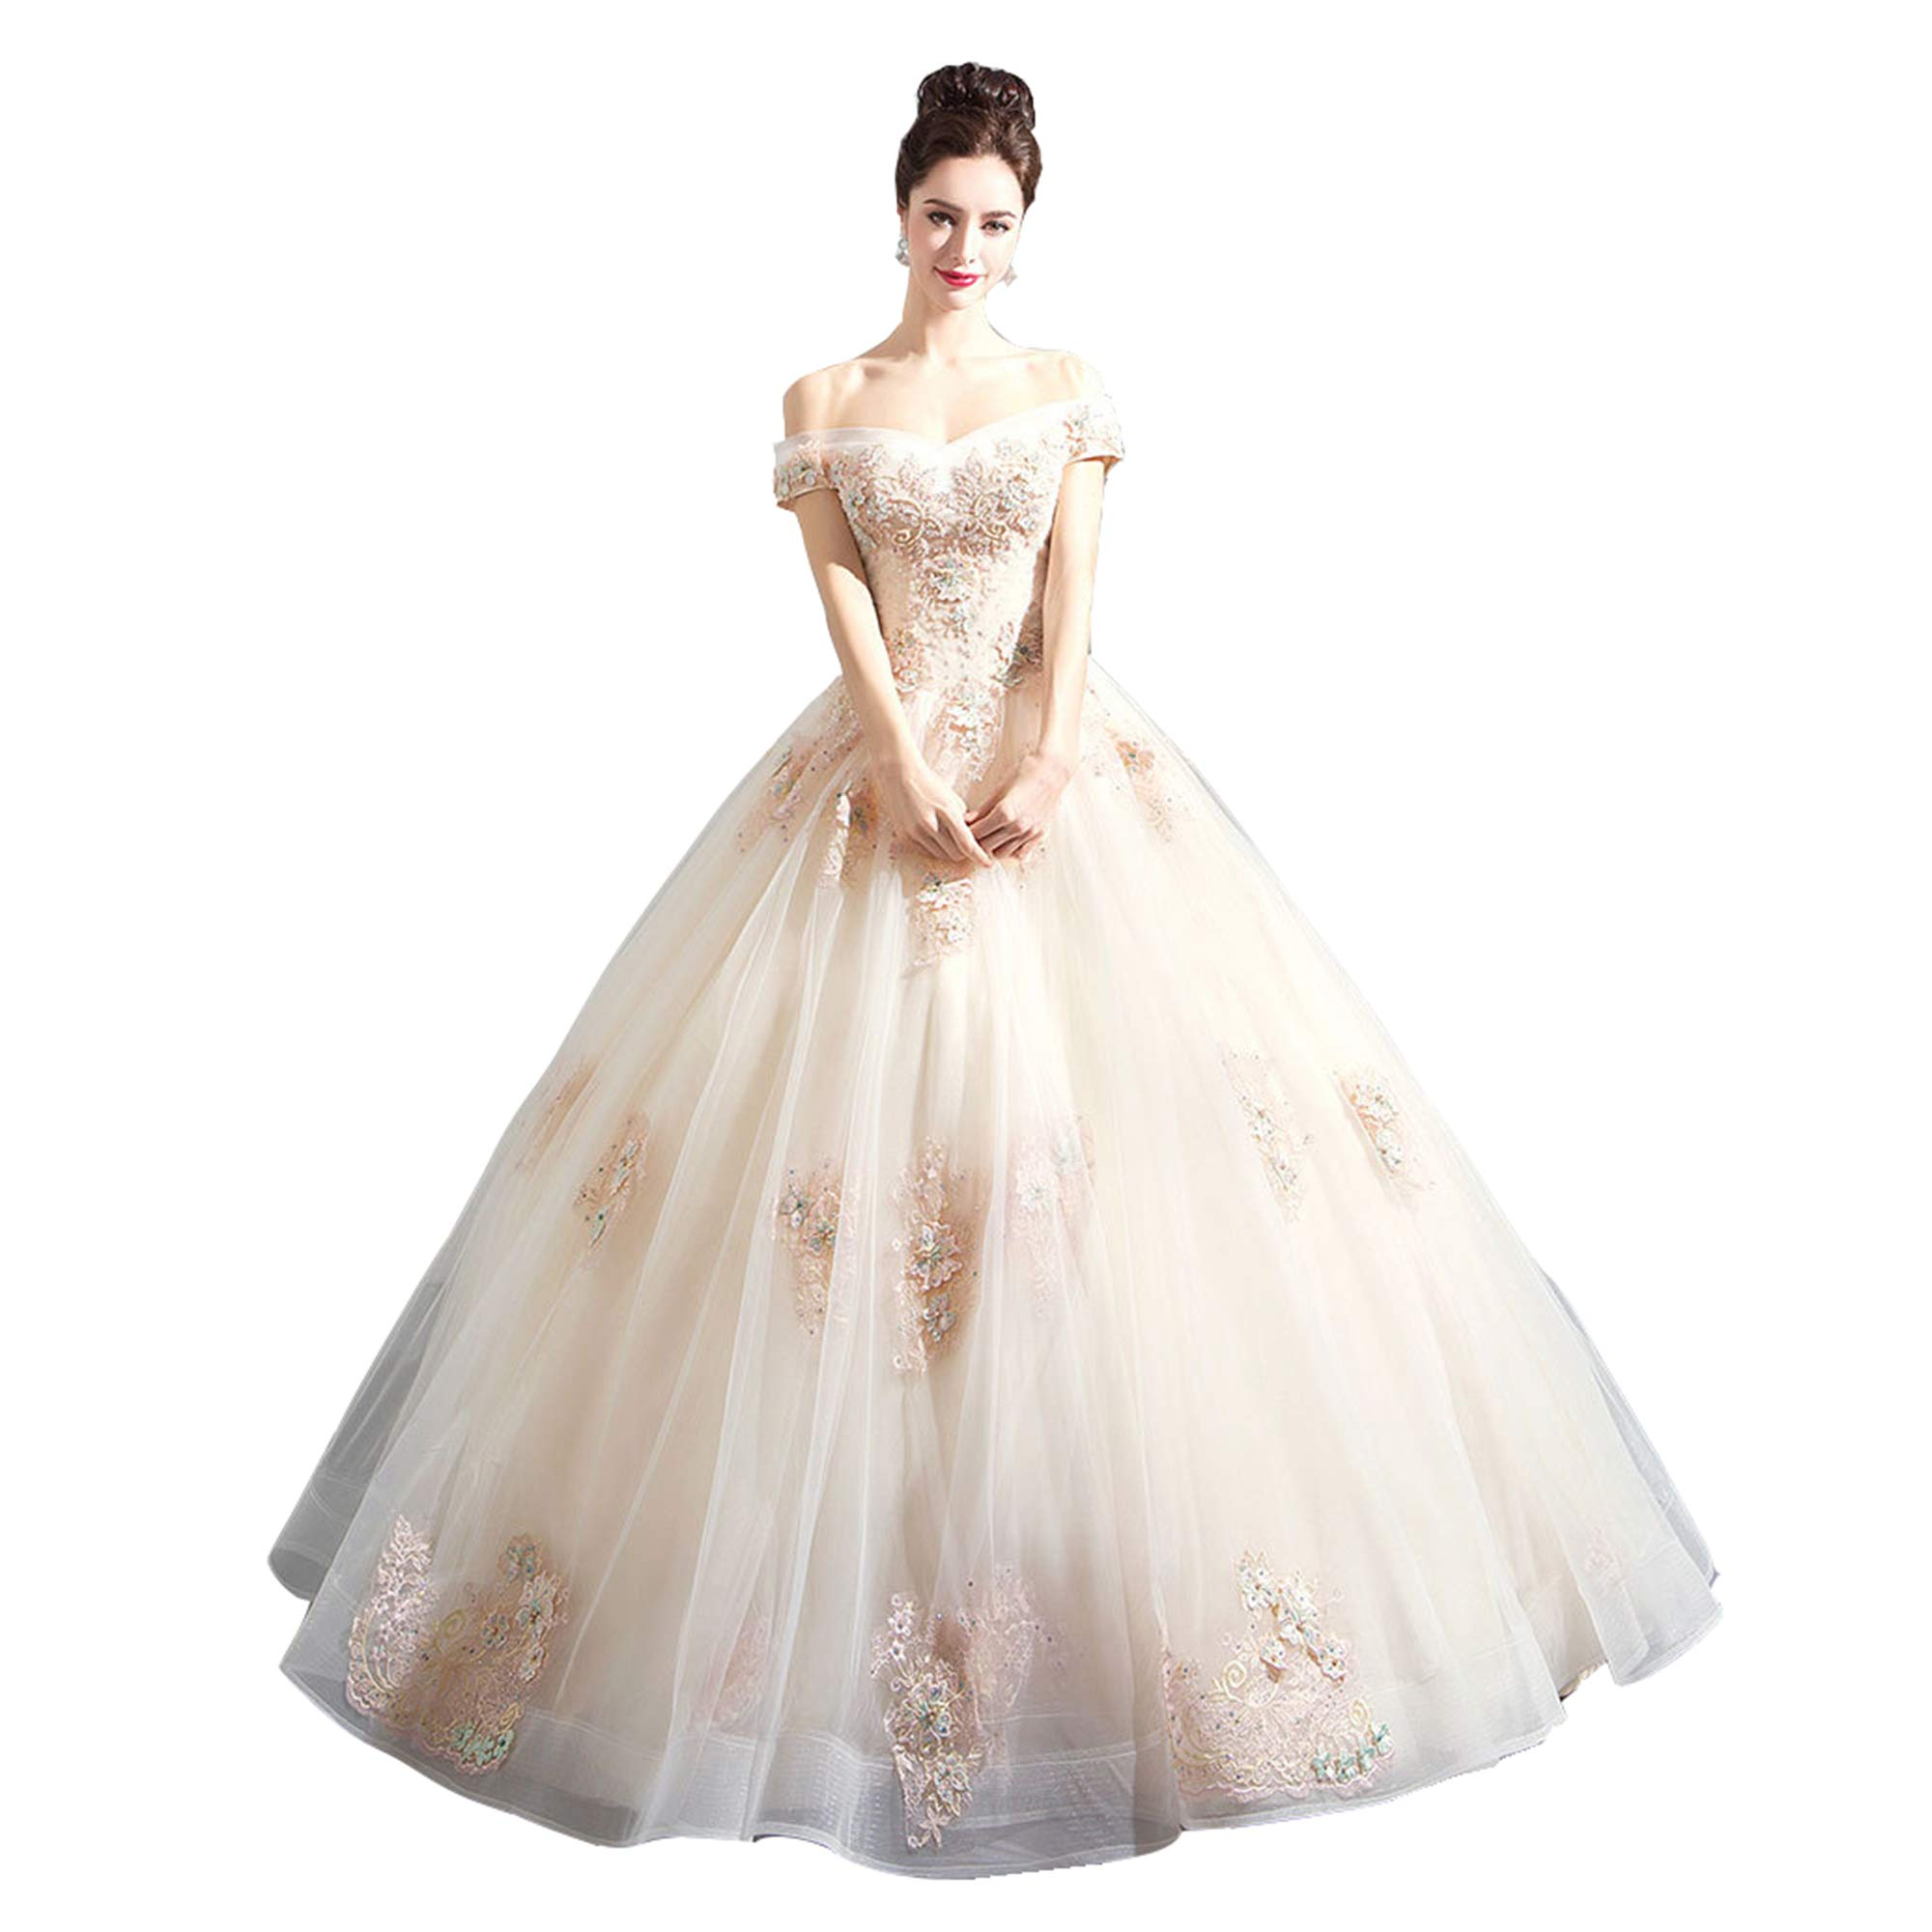 NOMSOCR Women's Lace Off Shoulder Tulle Wedding Dresses Bridal Gown (L, White) by NOMSOCR (Image #1)